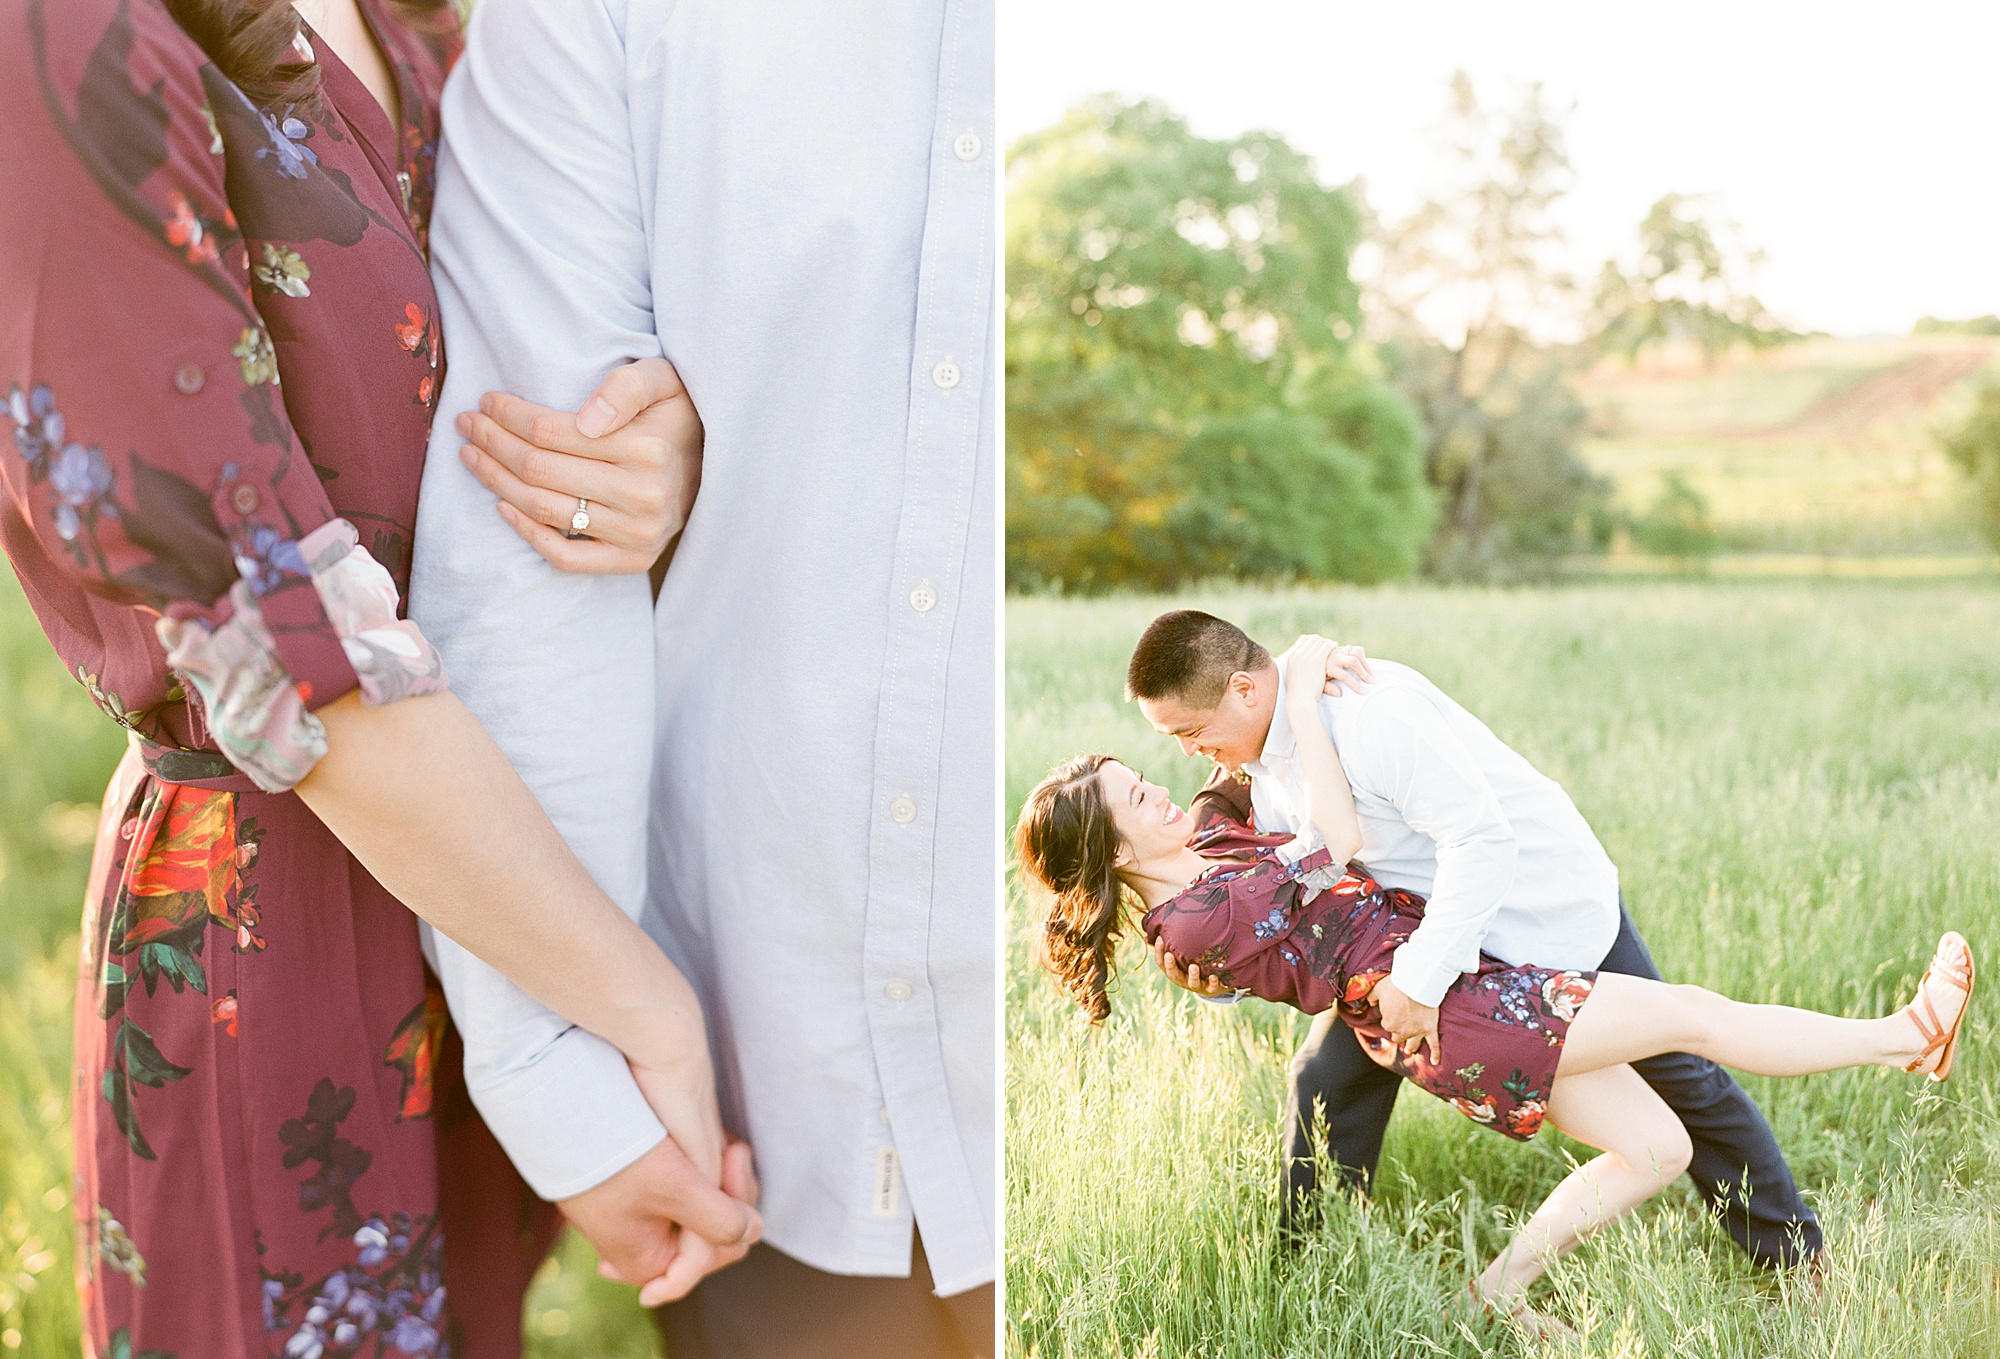 El Dorado Hills Engagement Session - Wendy and Danny - Ashley Baumgartner - Sacramento Wedding Photographer and Sacramento Wedding Photography - Bay Area Wedding Photographer_0022.jpg